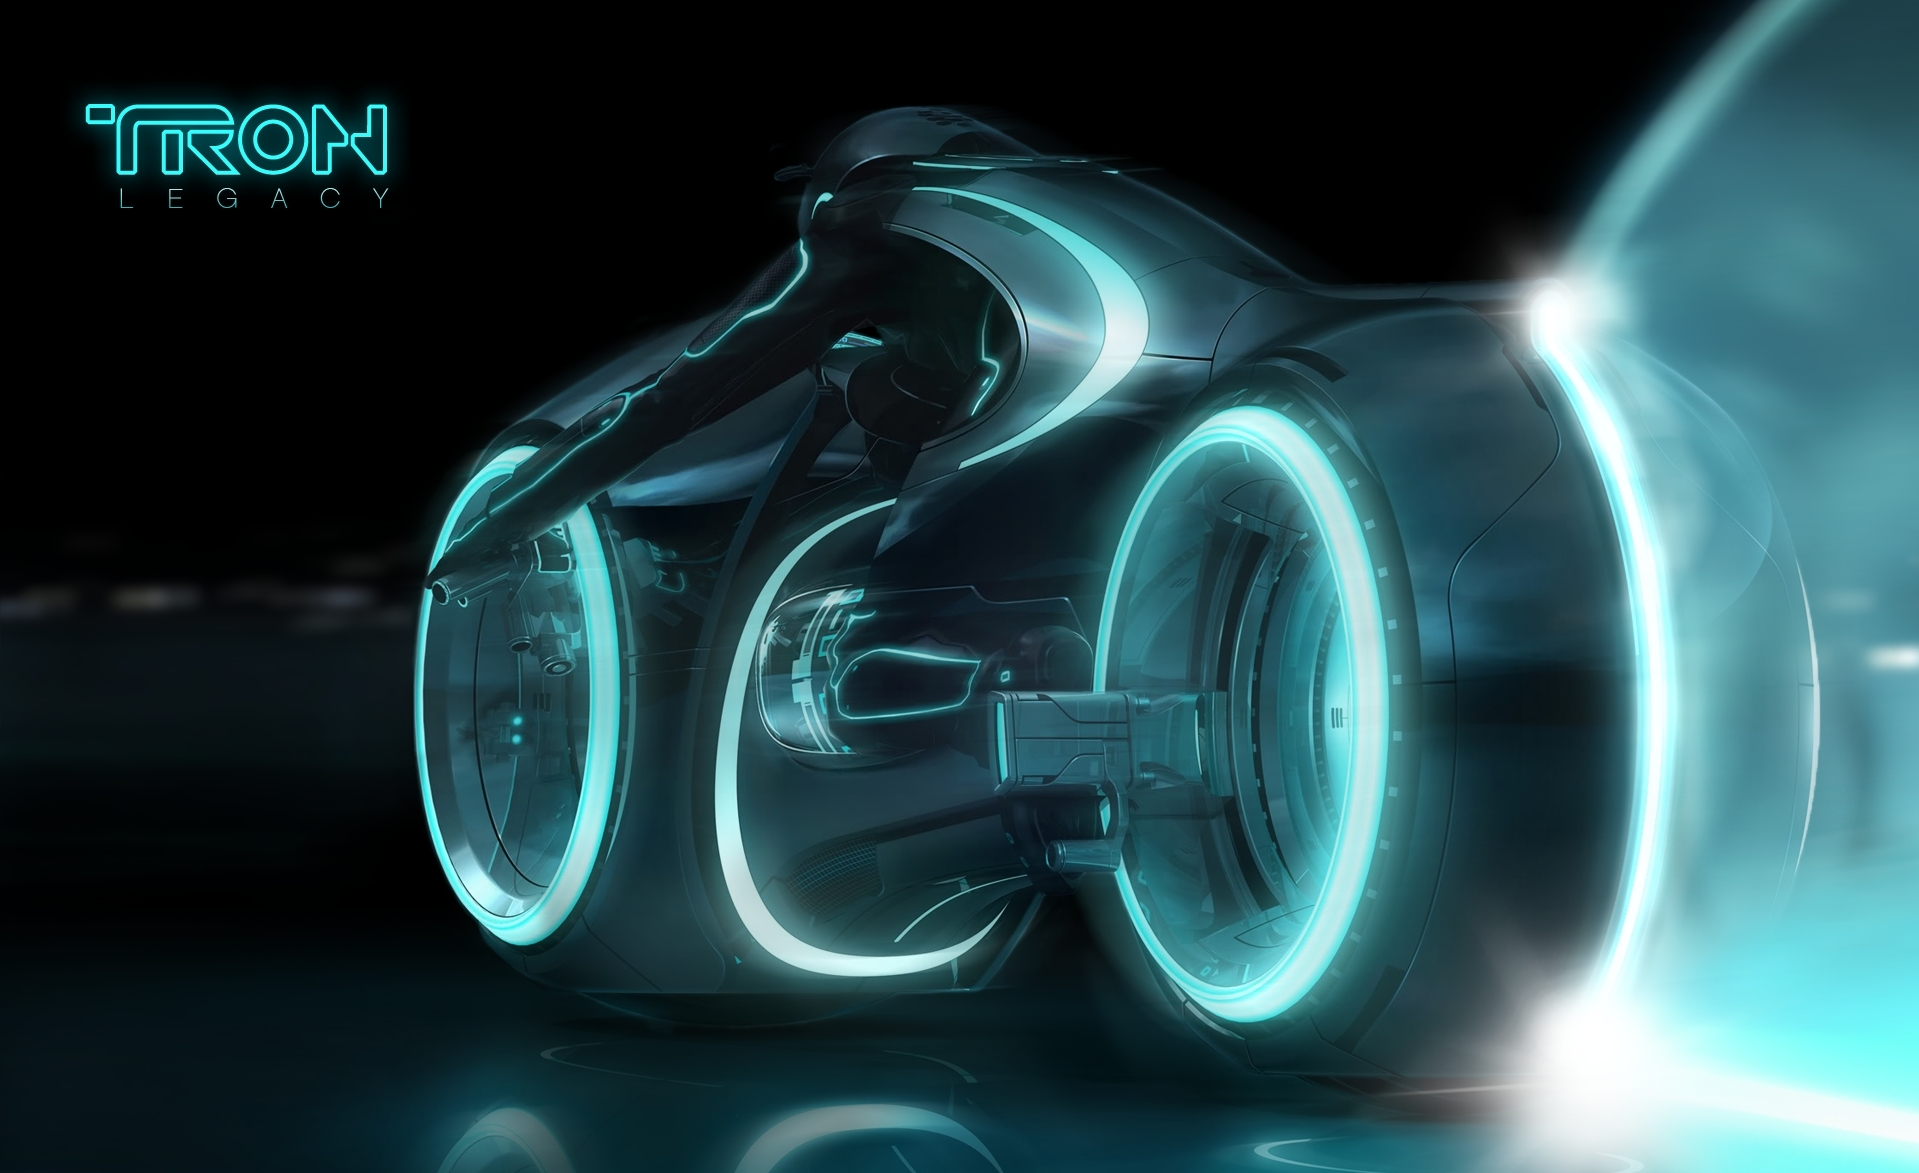 2010 tron evolution wallpapers - photo #6